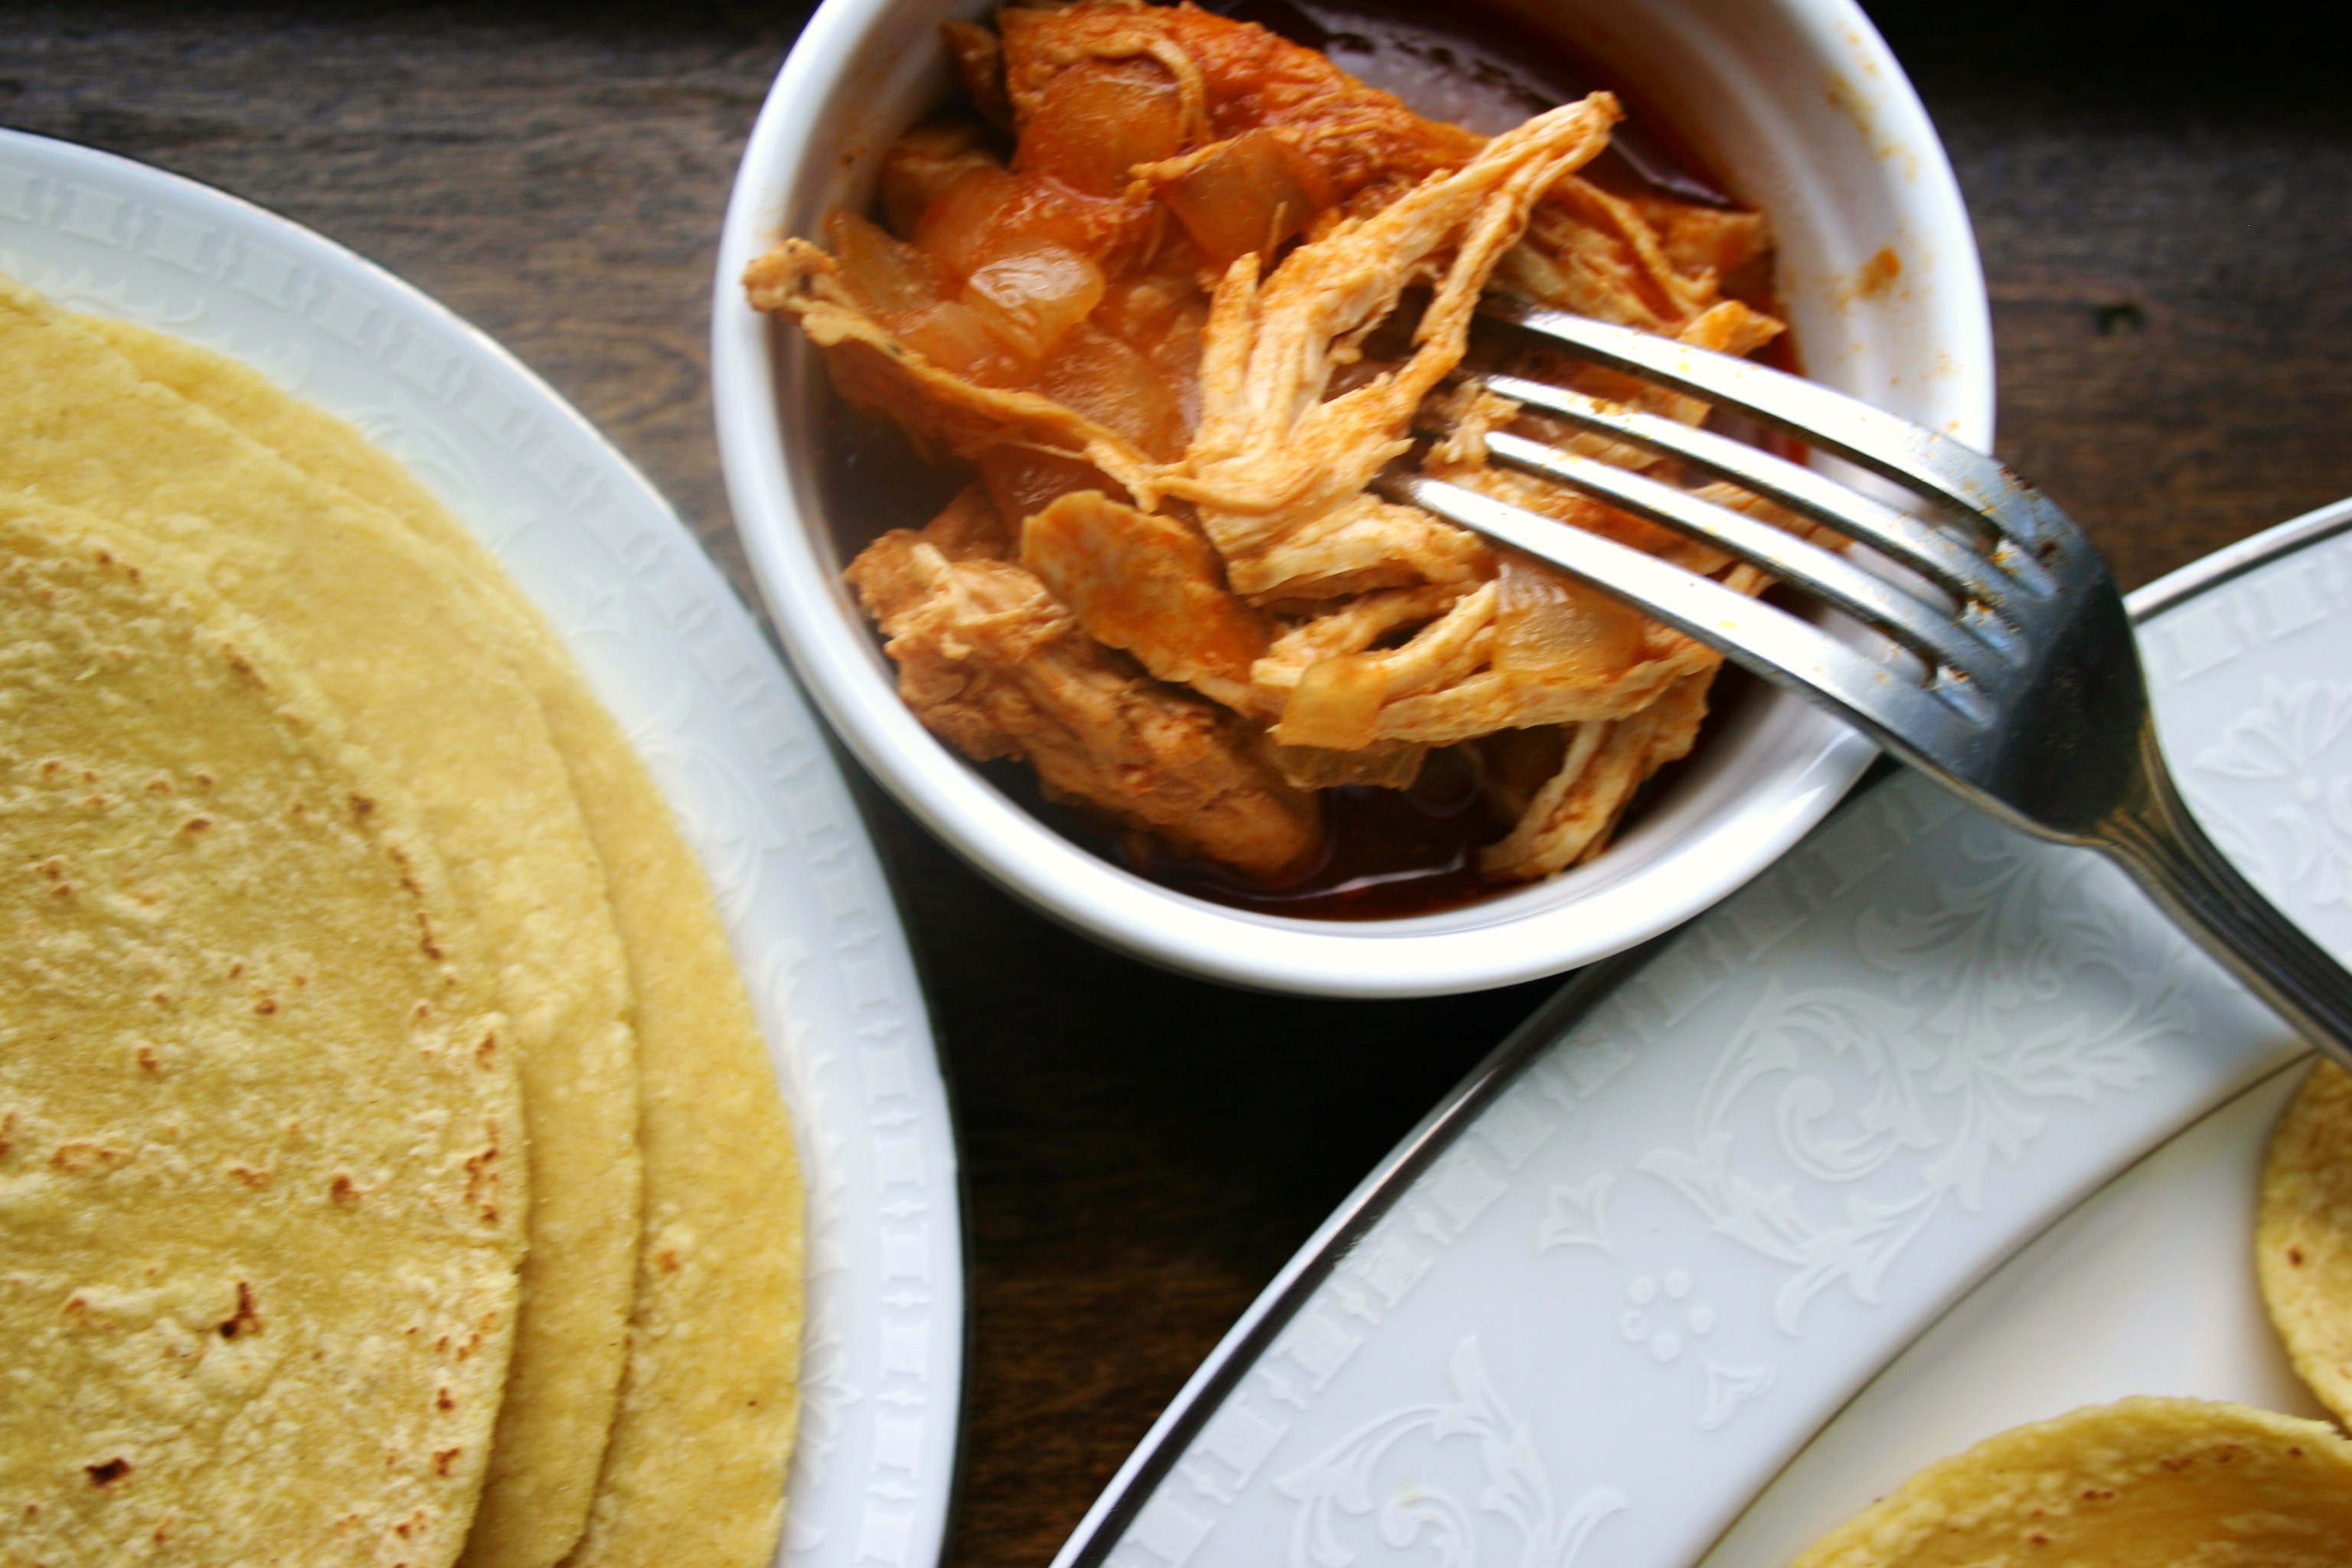 Thomas Pynchon: Beer-Braised Chicken Tacos